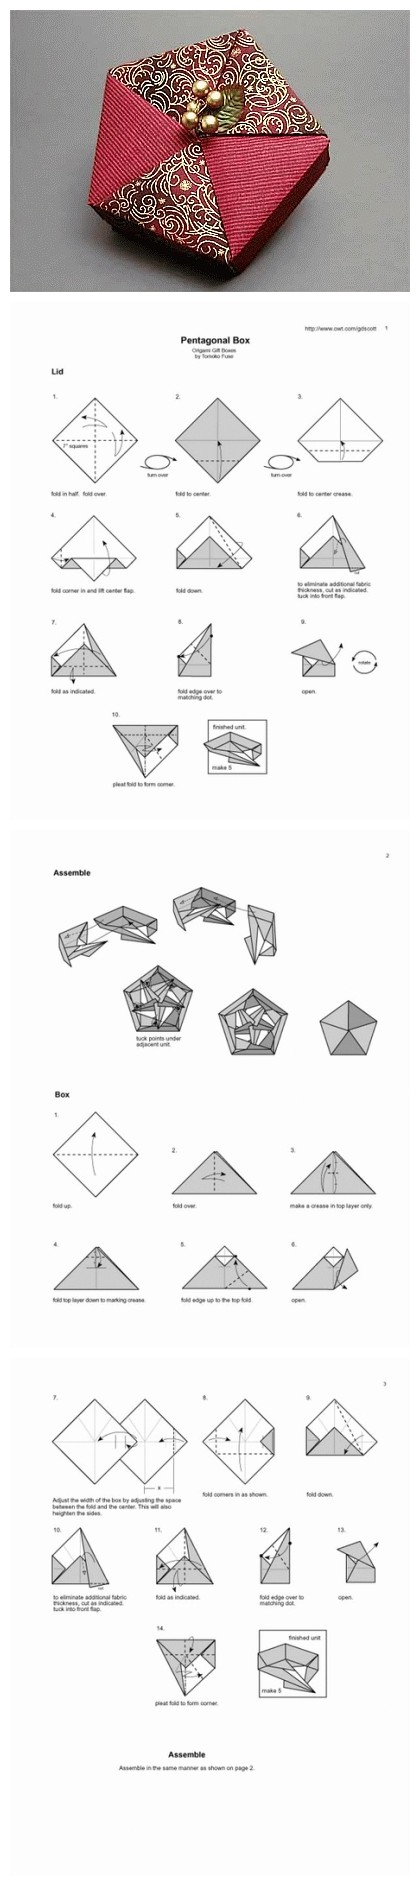 small resolution of origami pentagonal box with instructions